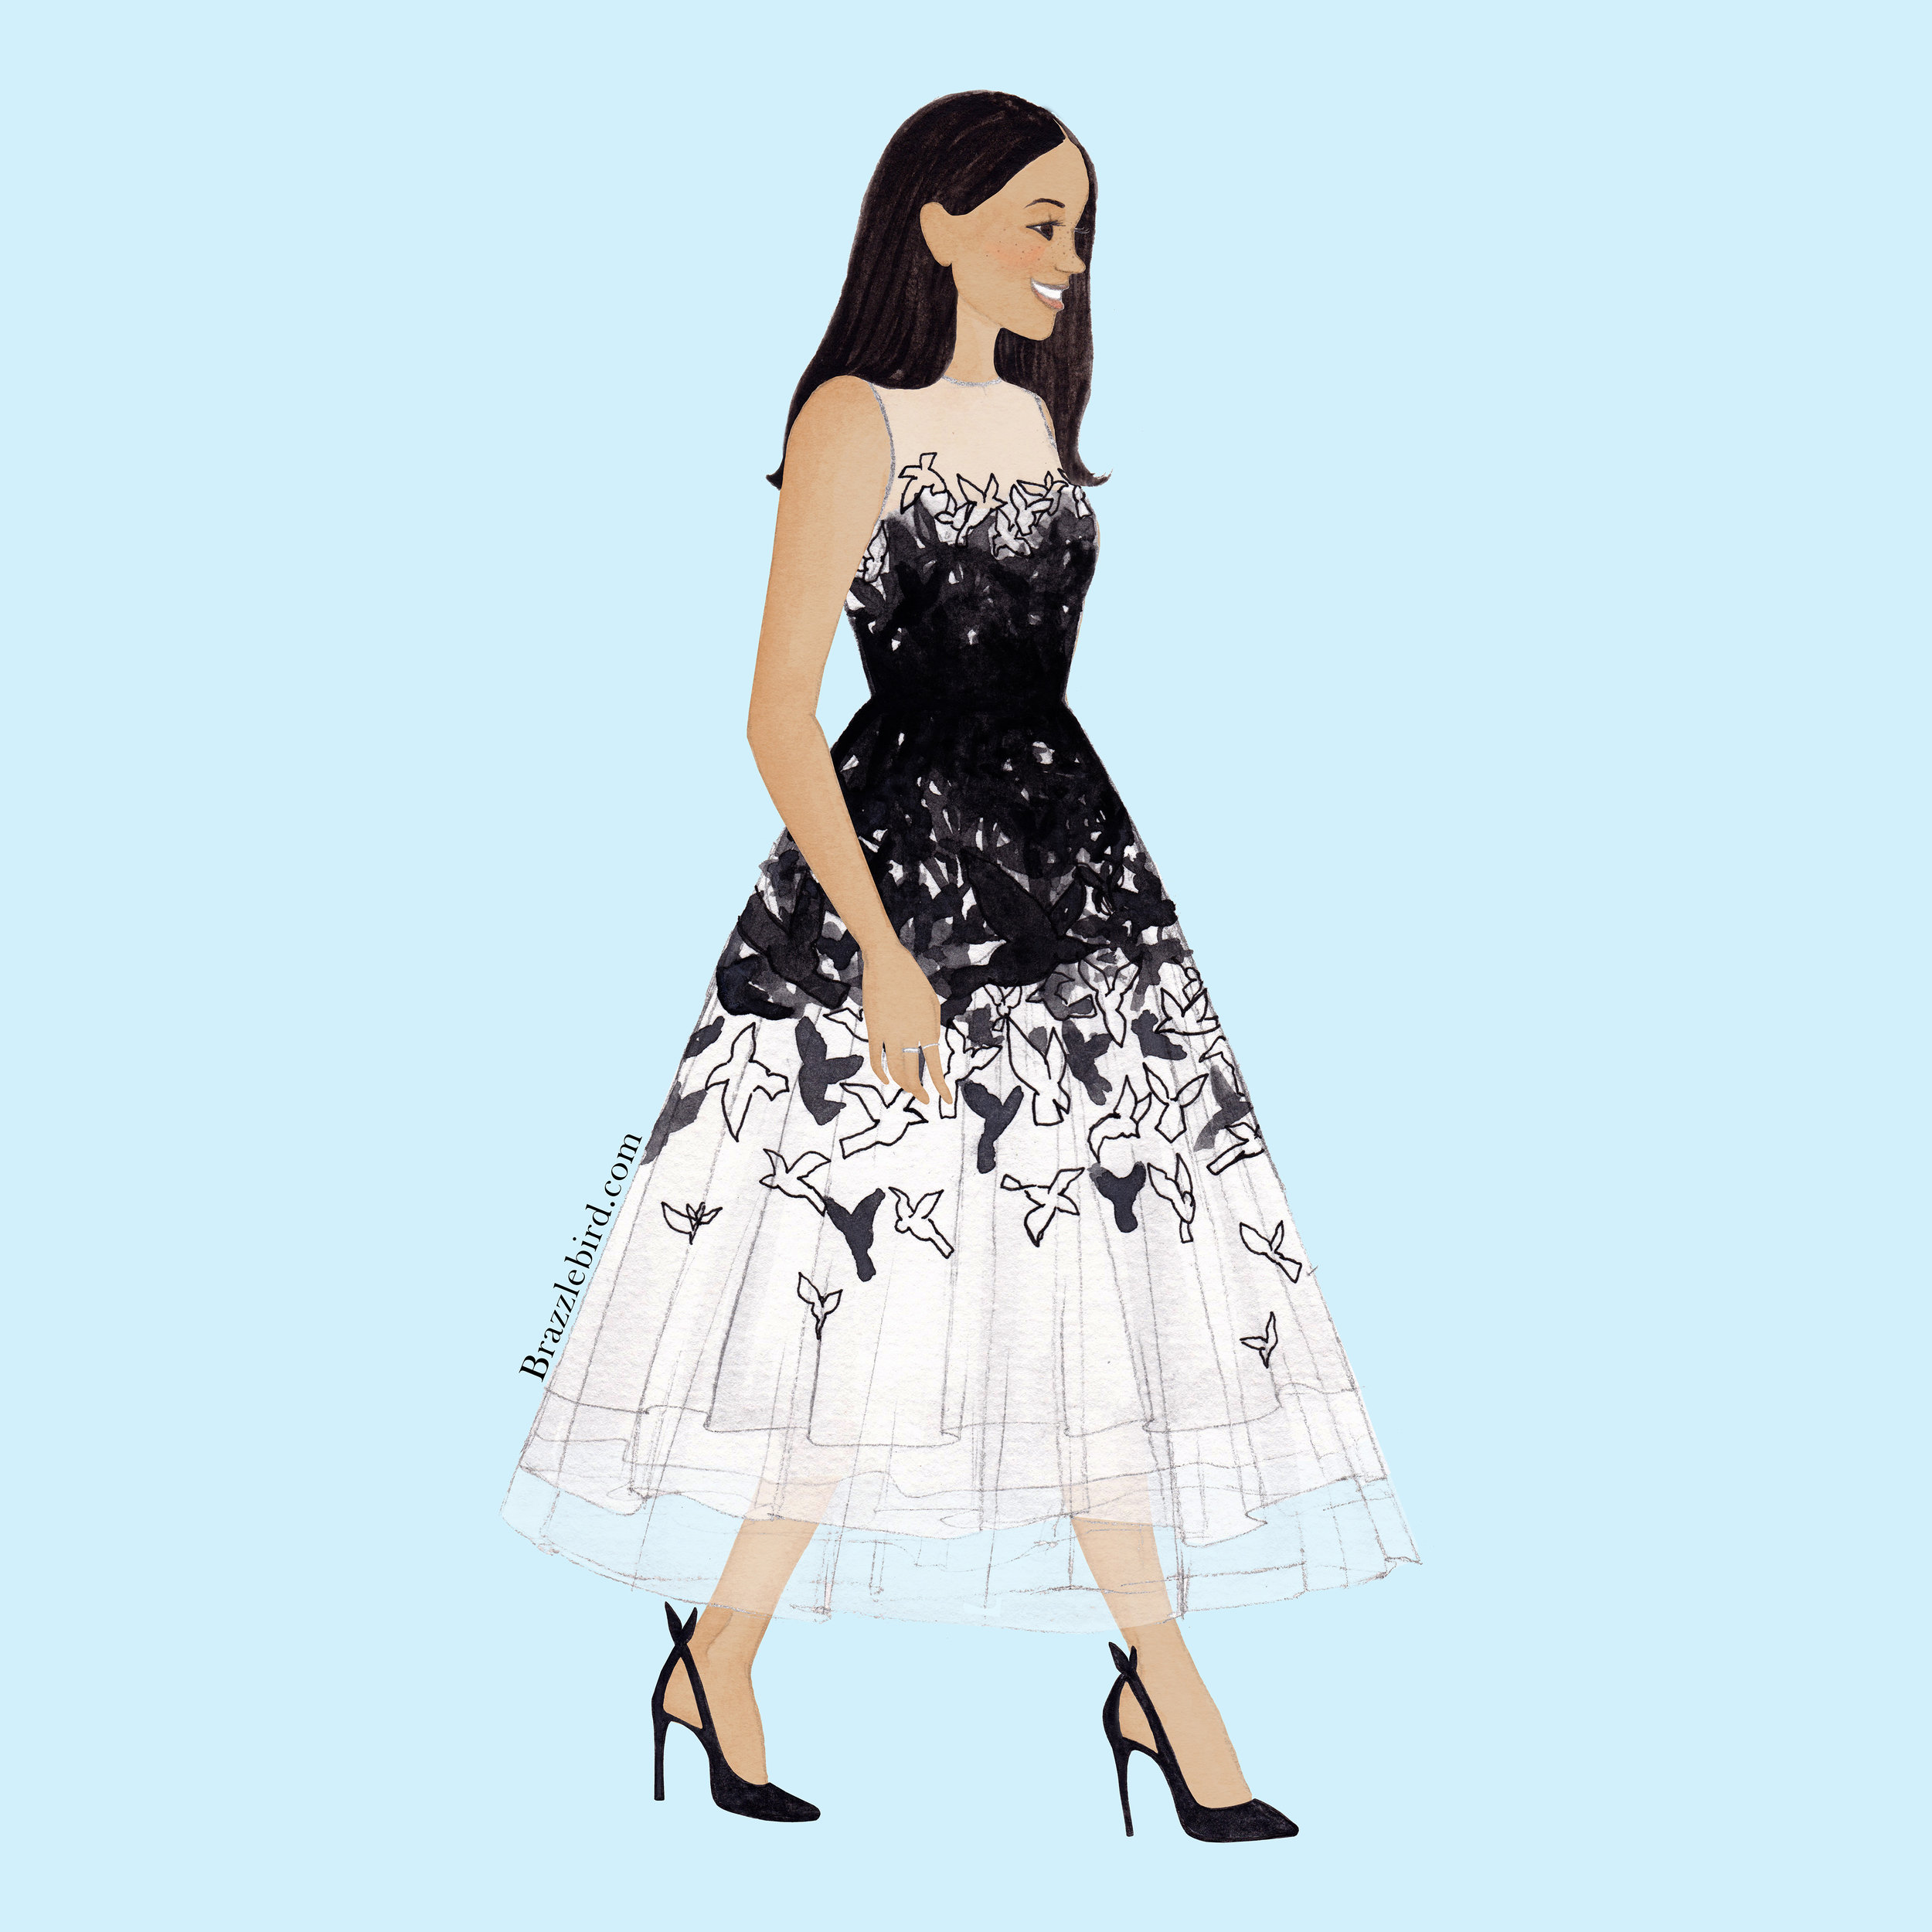 Brazzlebird - Meghan Markle Oscar De La Renta Bird Dress Watercolor Fashion Doll